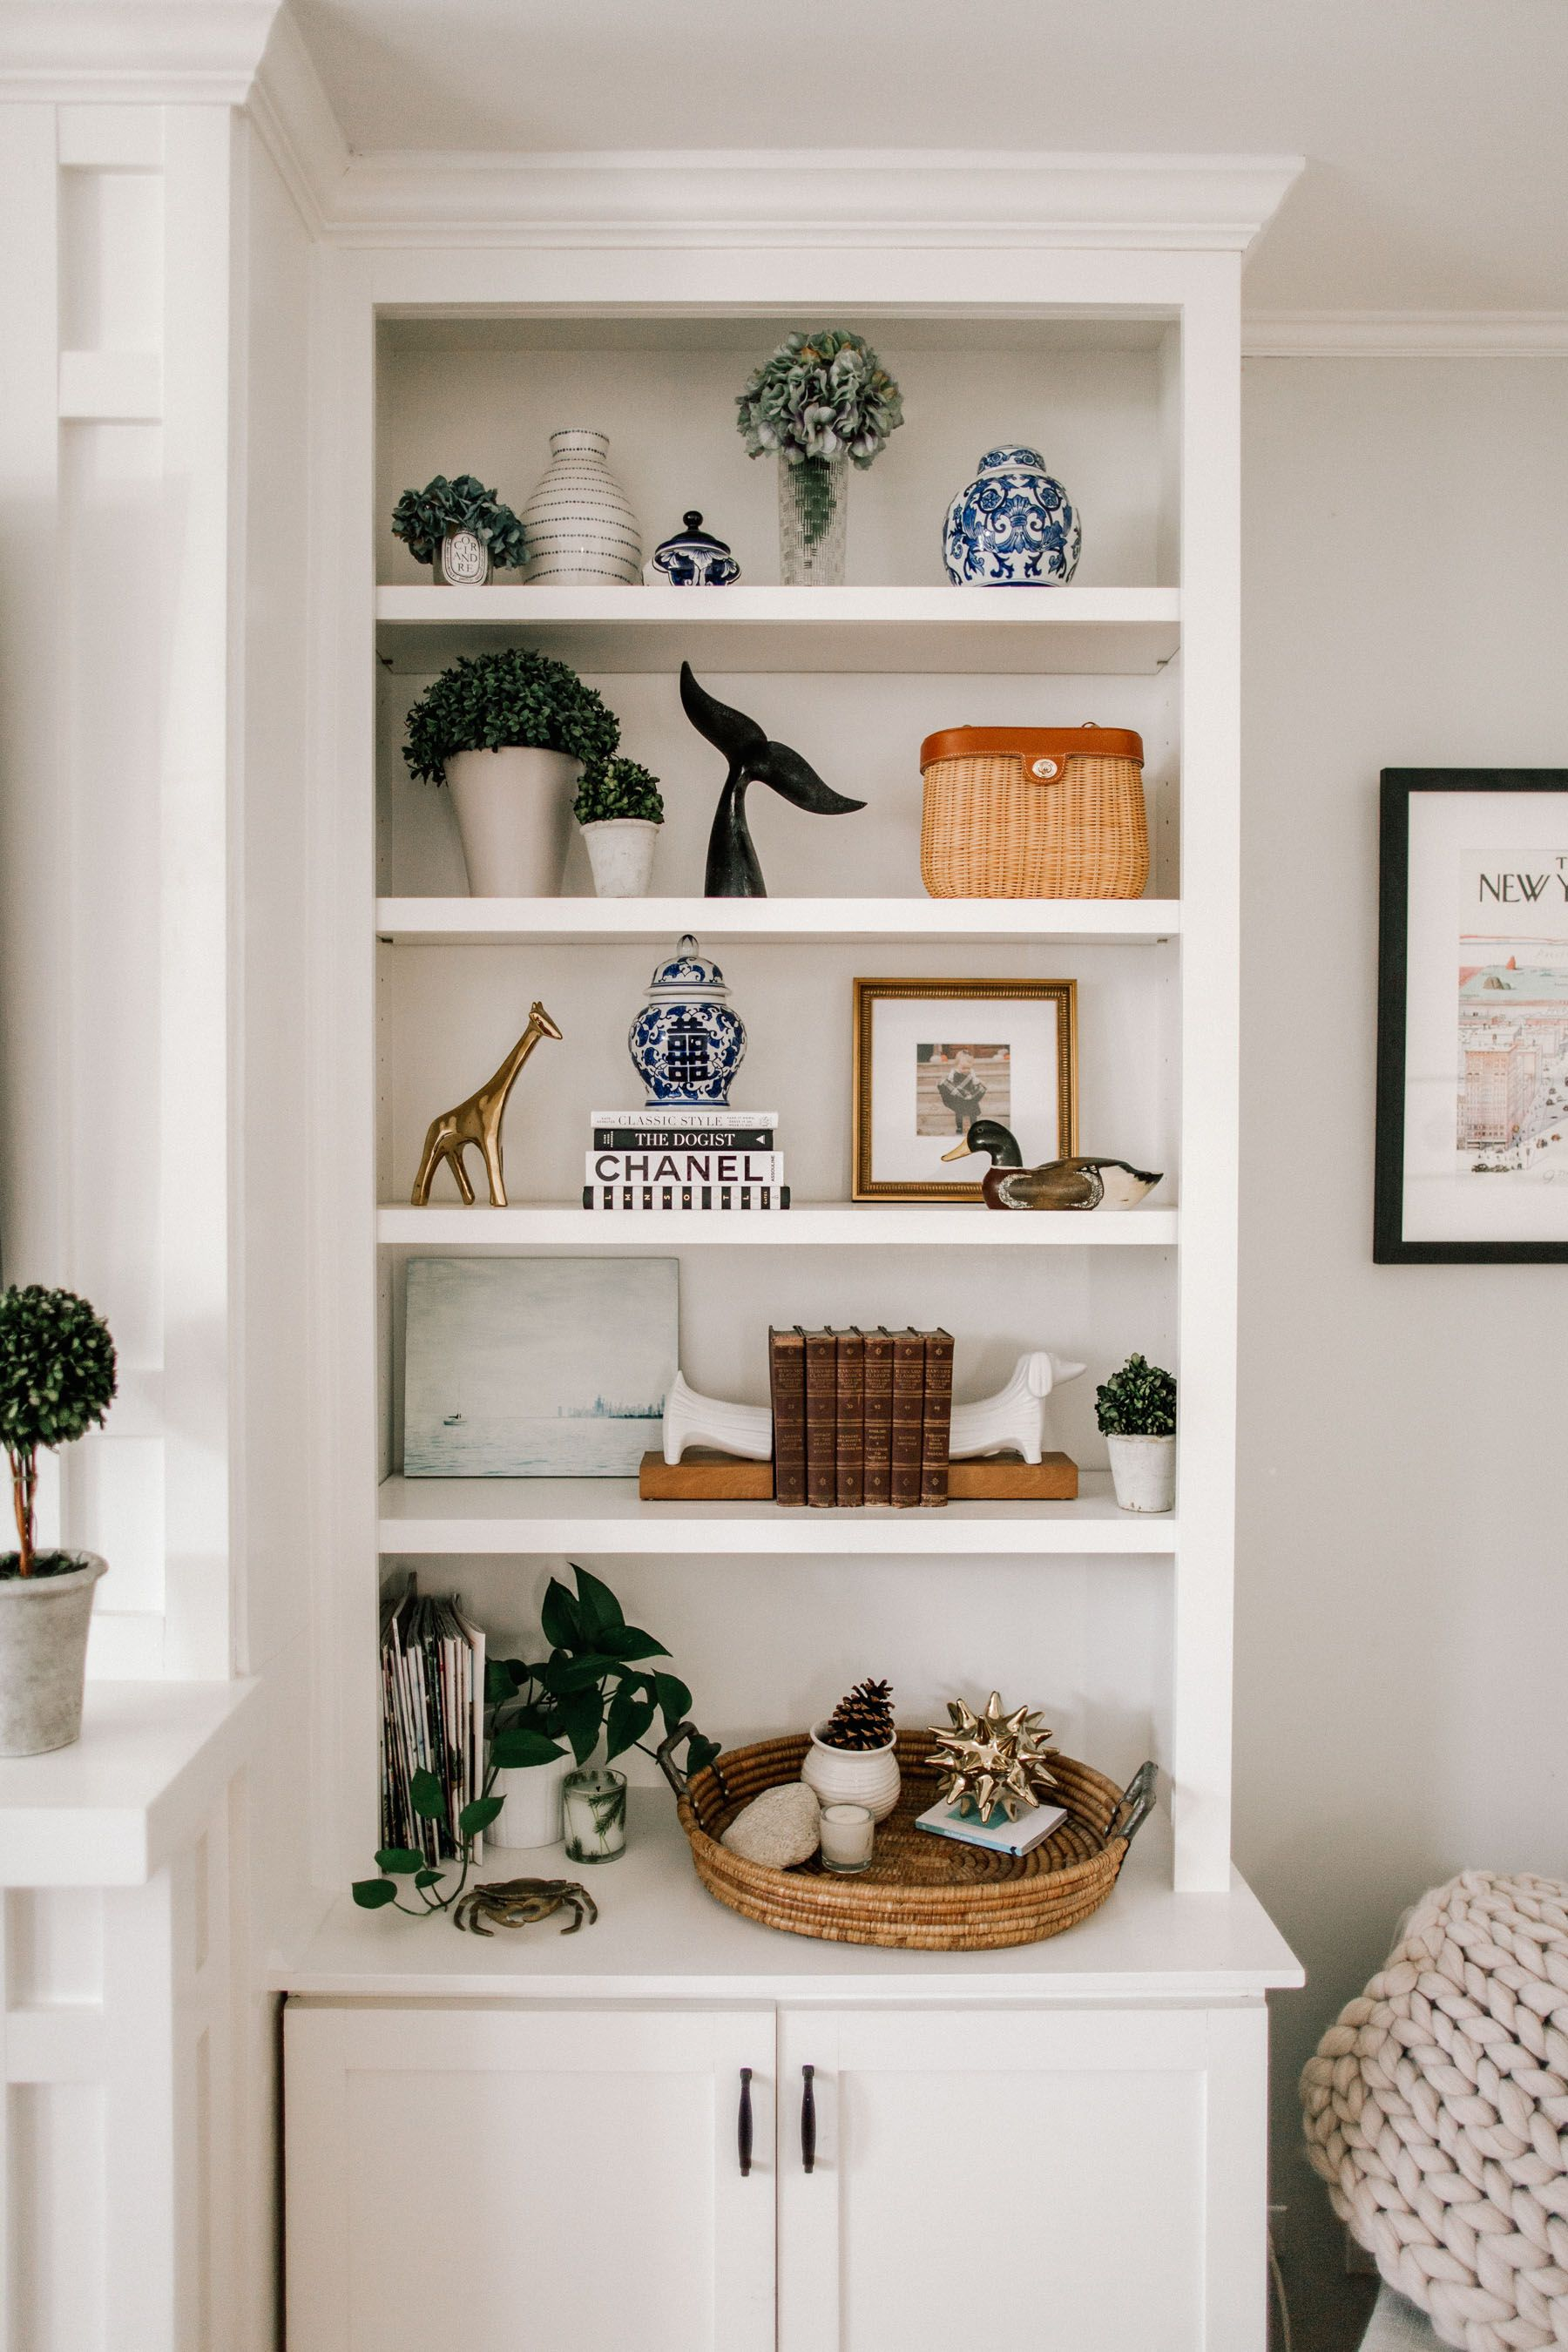 How To Decorate Preppy Bookshelves Kelly In The City Decorating Bookshelves Bookshelf Decor Bookshelves Diy